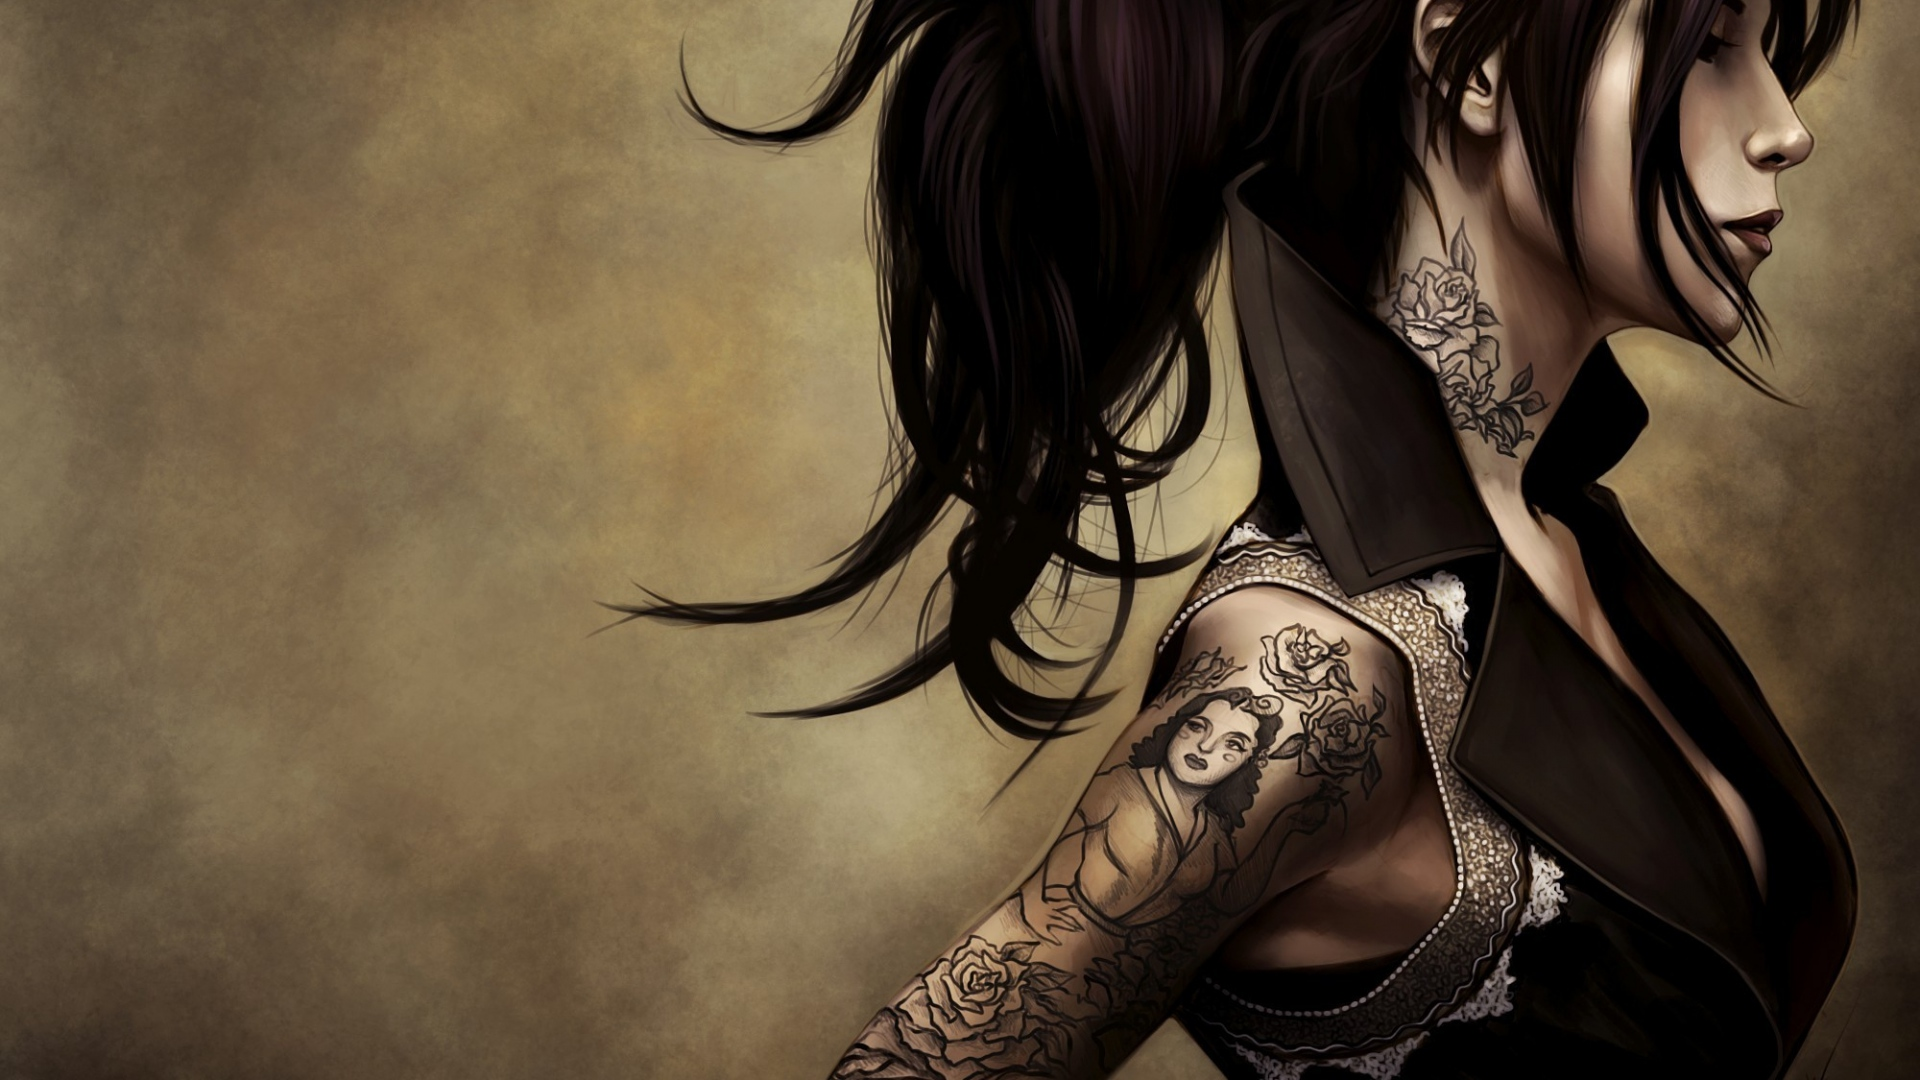 girl-profile-tattoos-shoulder-1920x1080